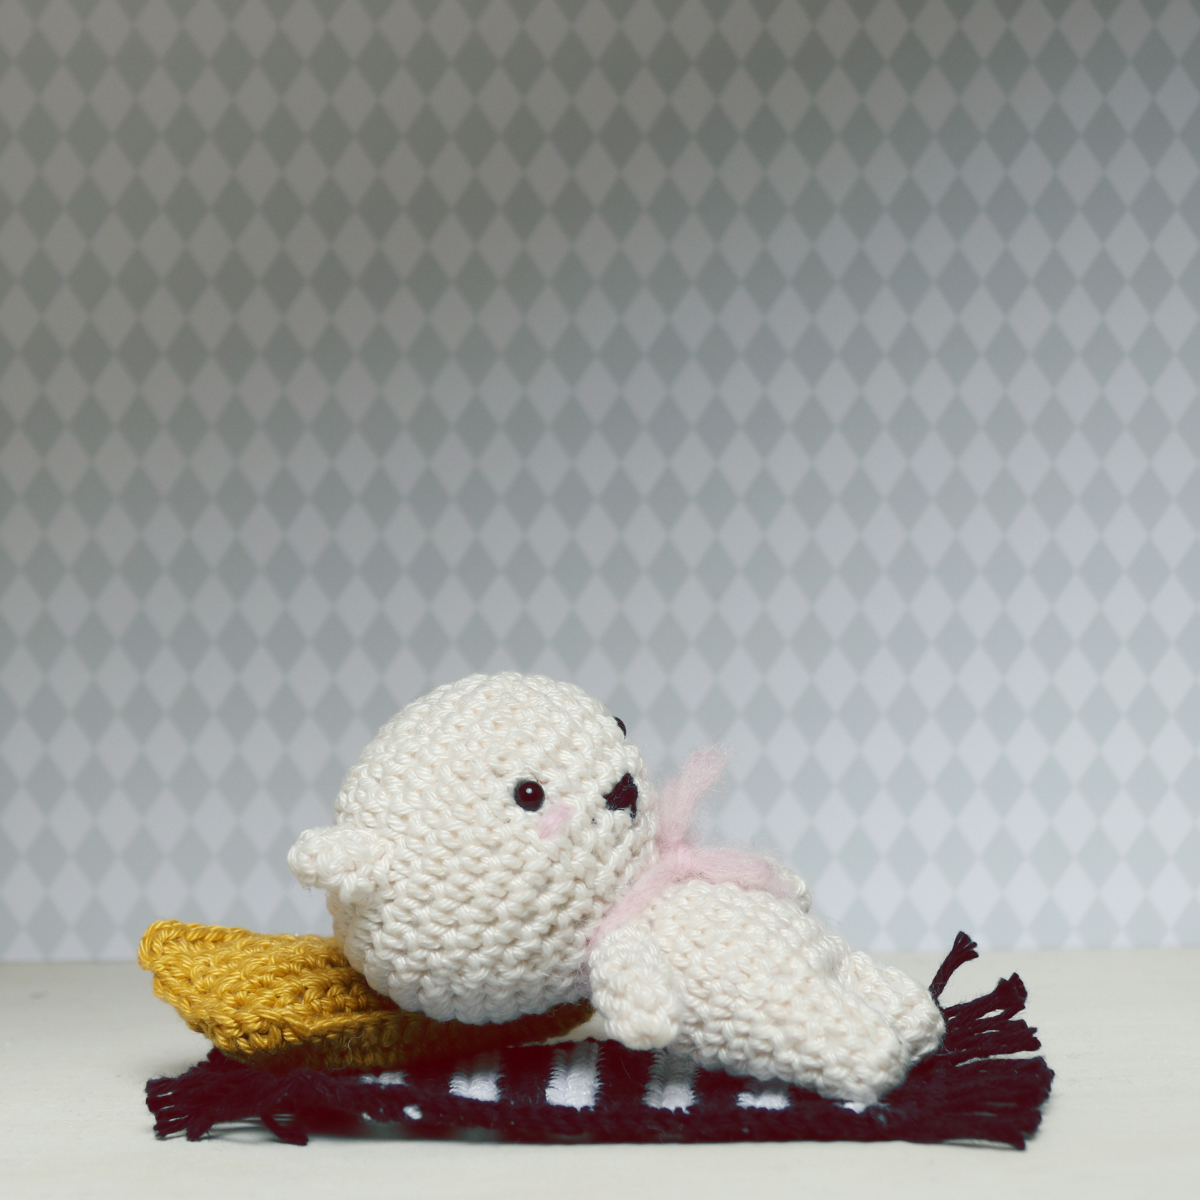 Crochet Mini Pillow by Ina Rho